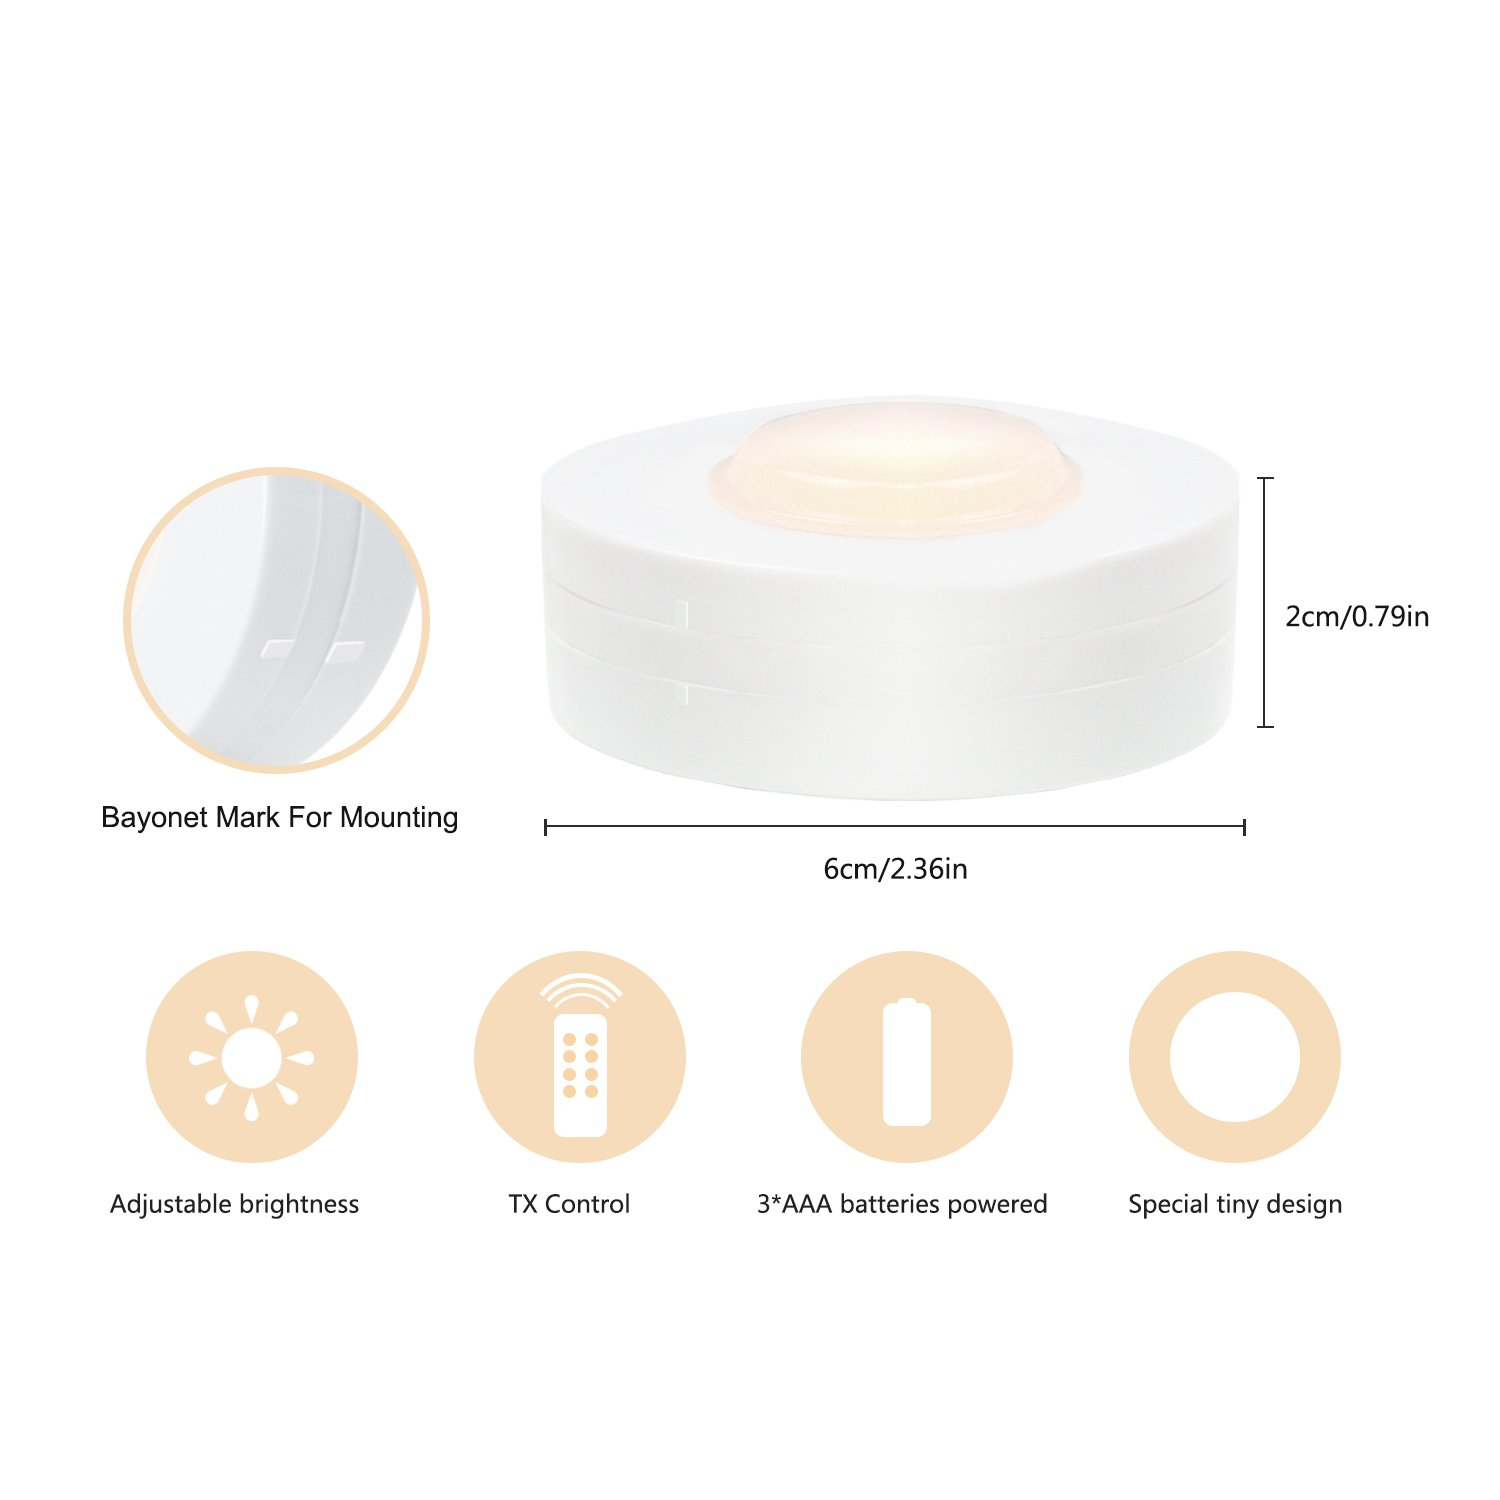 SALKING LED Under Cabinet Lighting, Wireless LED Puck Lights with Remote Control, Dimmable Closet Light, Battery Powered Under Counter Lights for Kitchen, Natural White 6 Pack by Salking (Image #3)